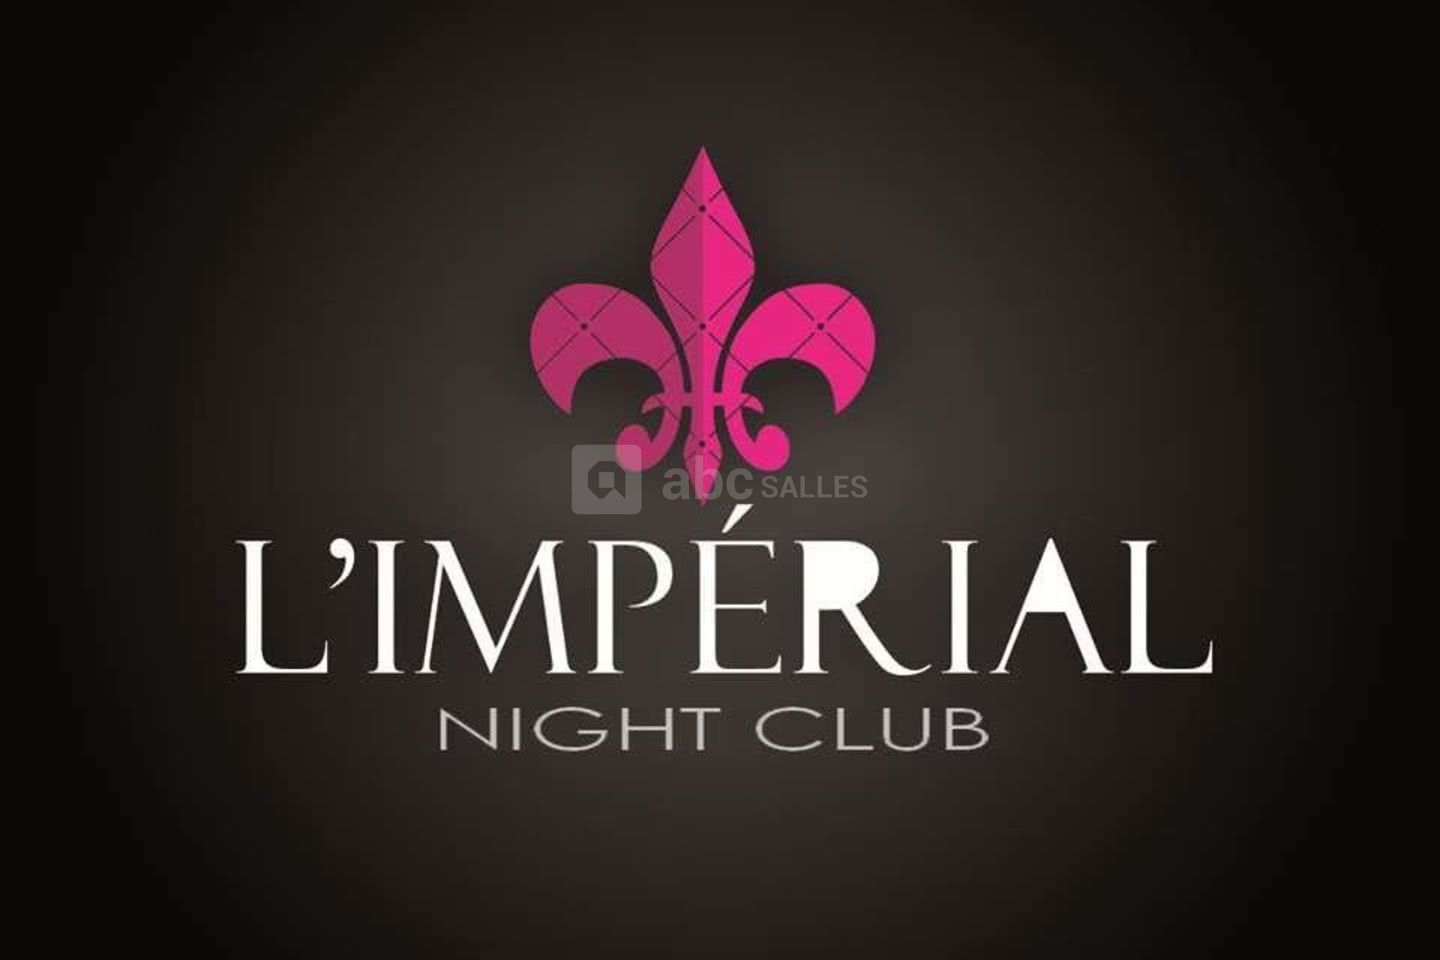 L'Imperial